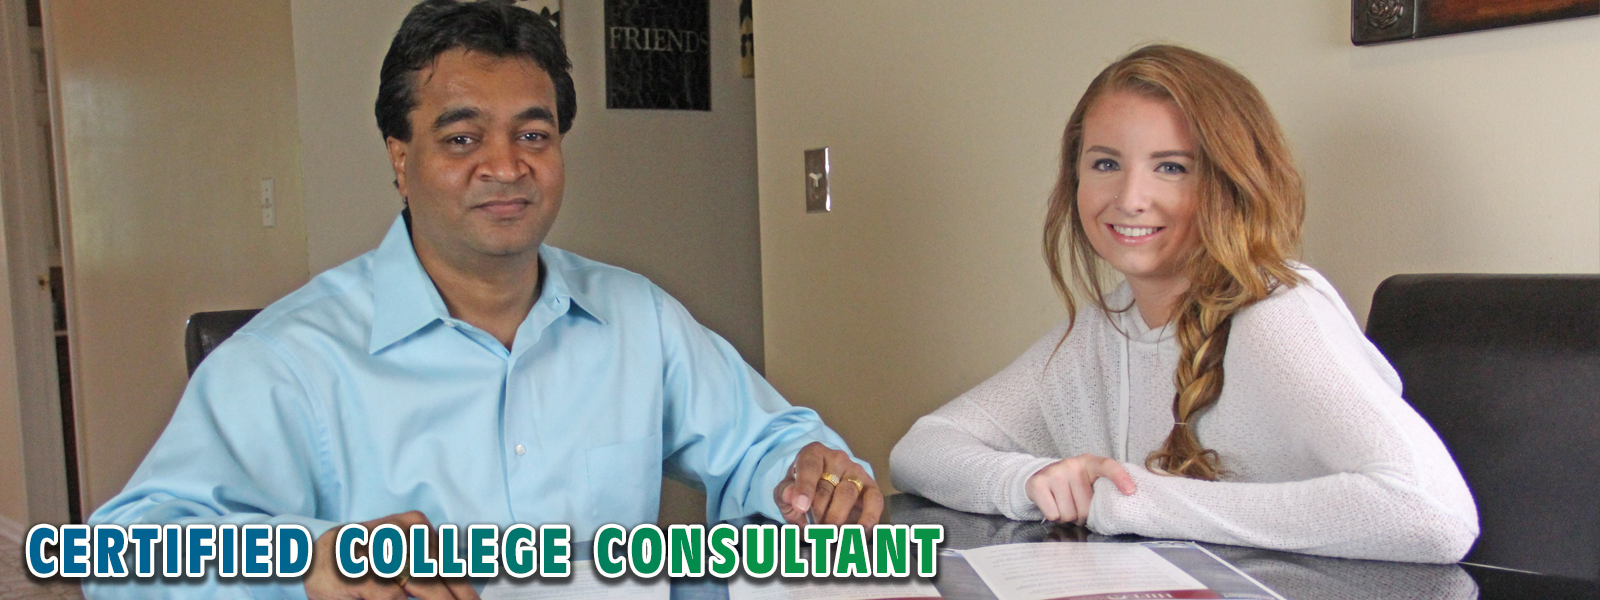 Local Certified College Consultant